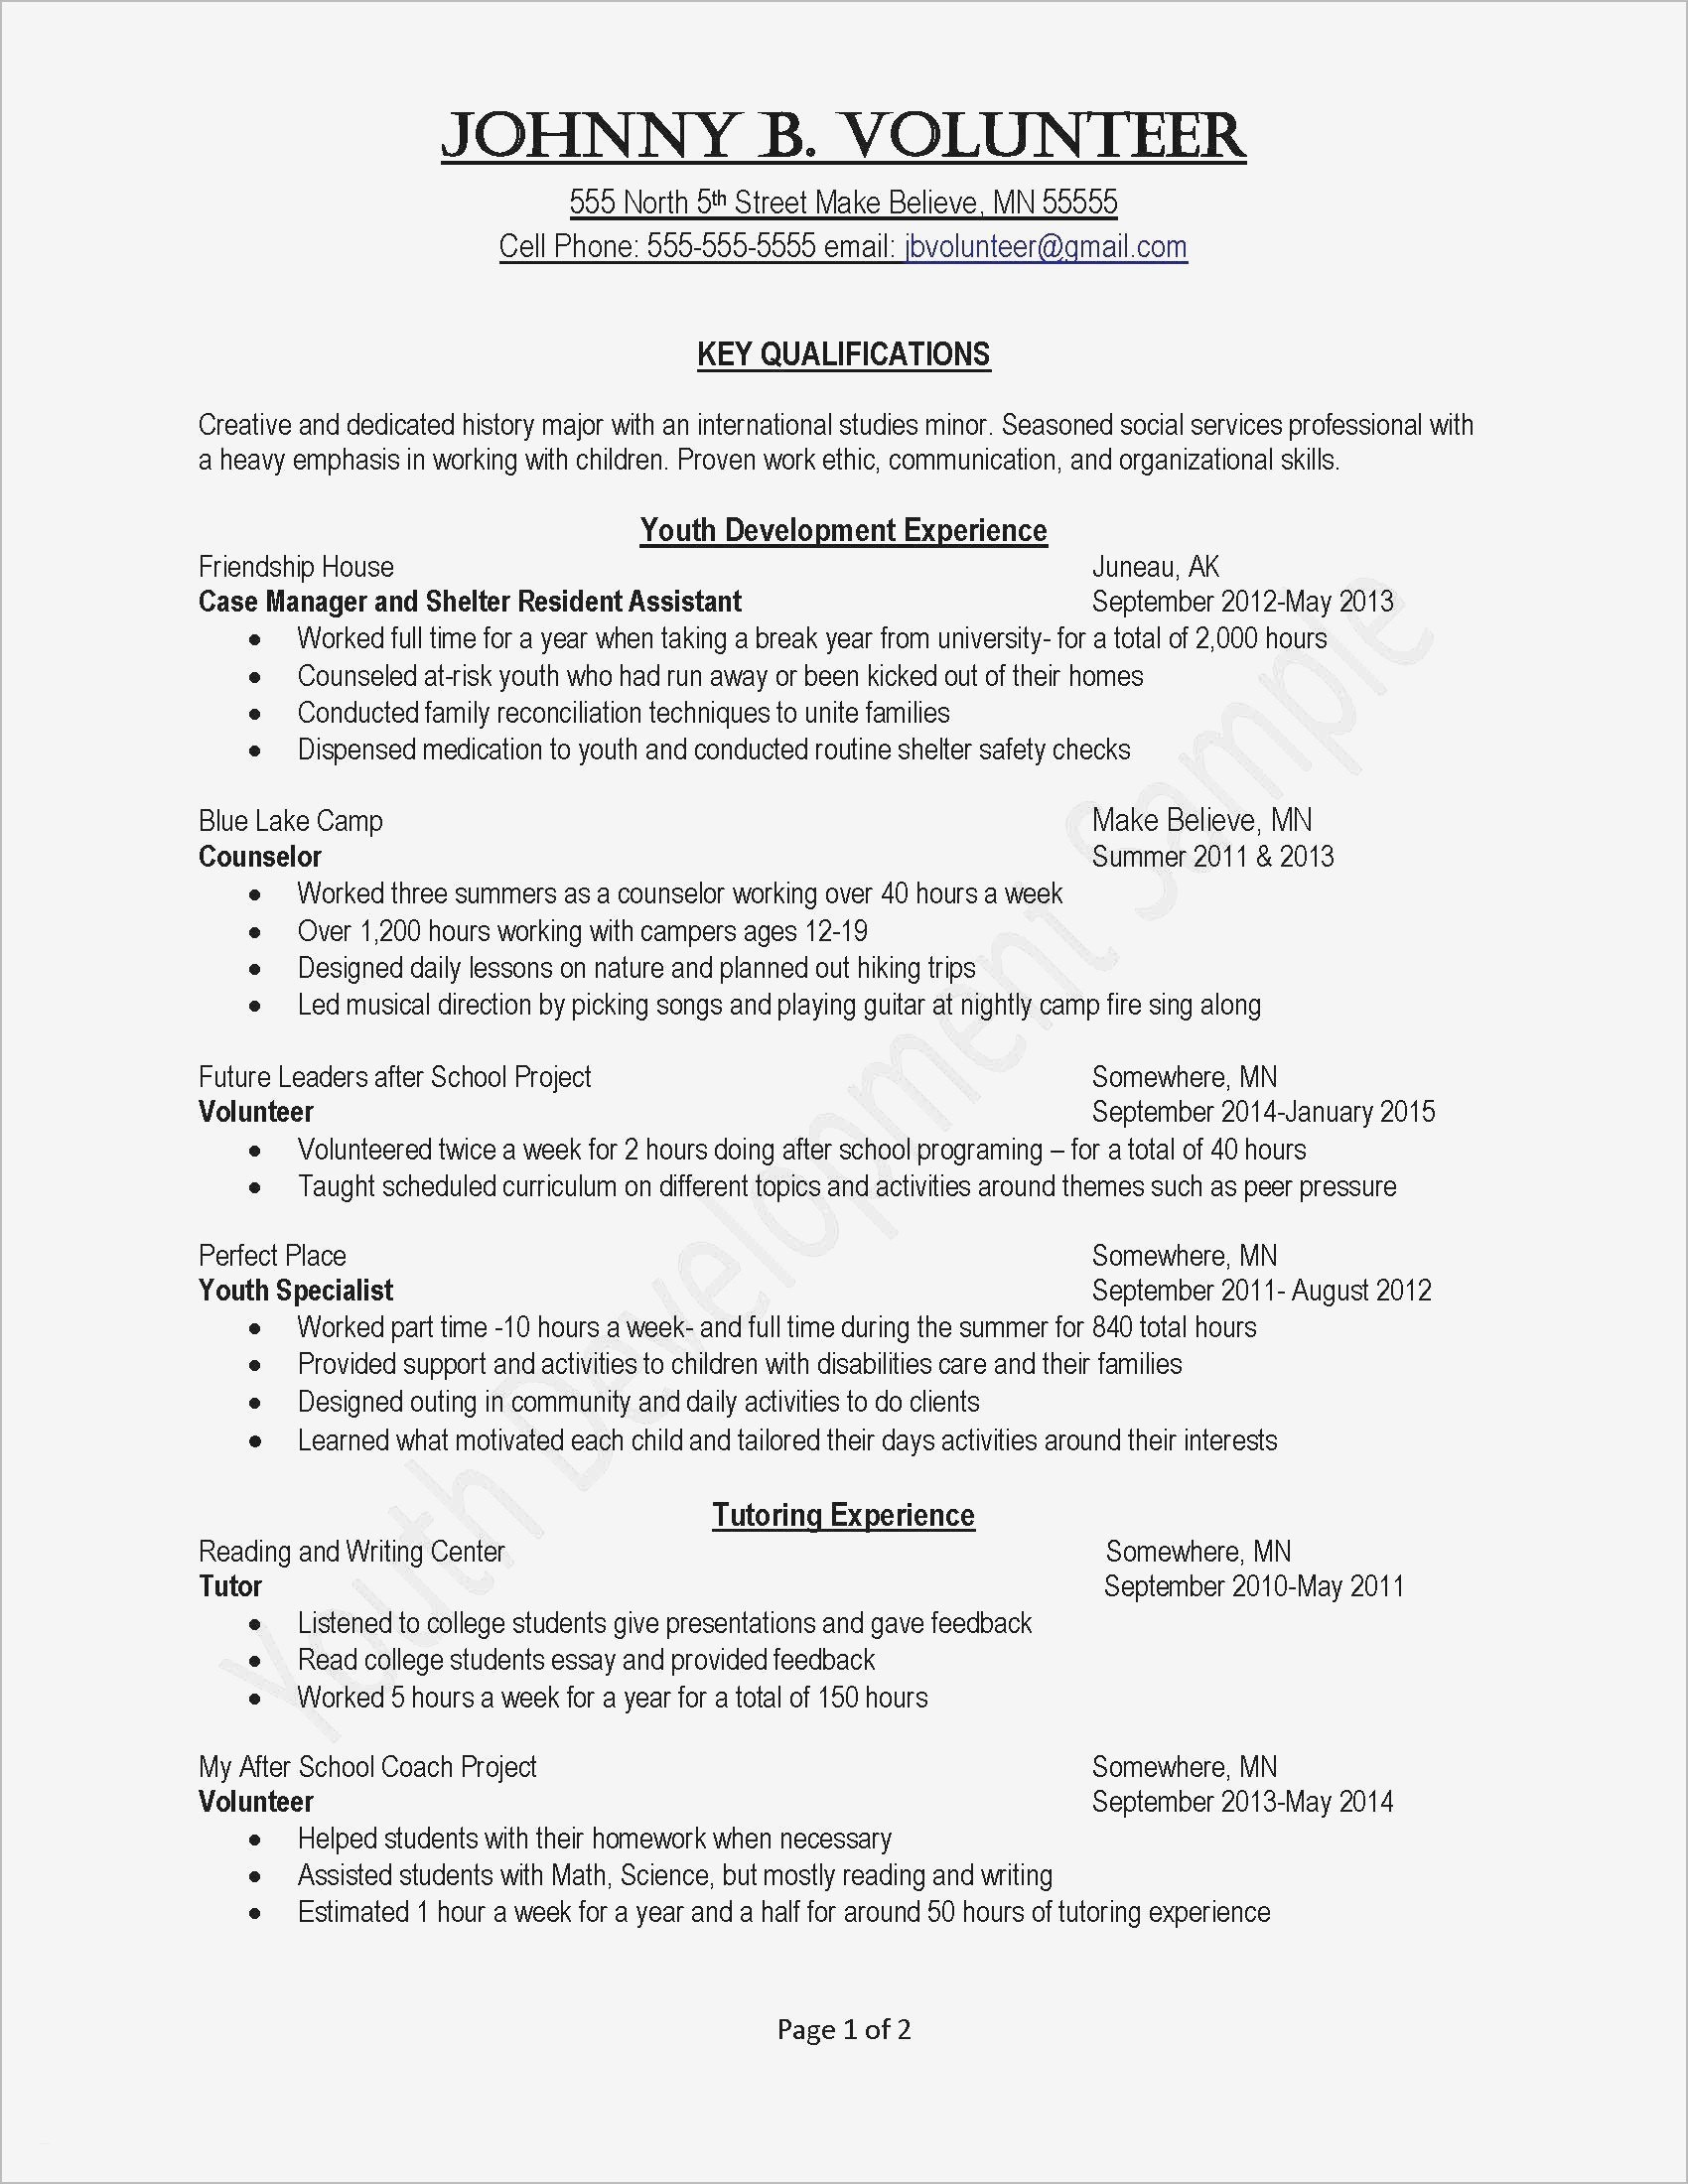 Vacation Schedule Template 2015 Best Free Holiday Letter Template Examples Vacation Schedule Template 2015